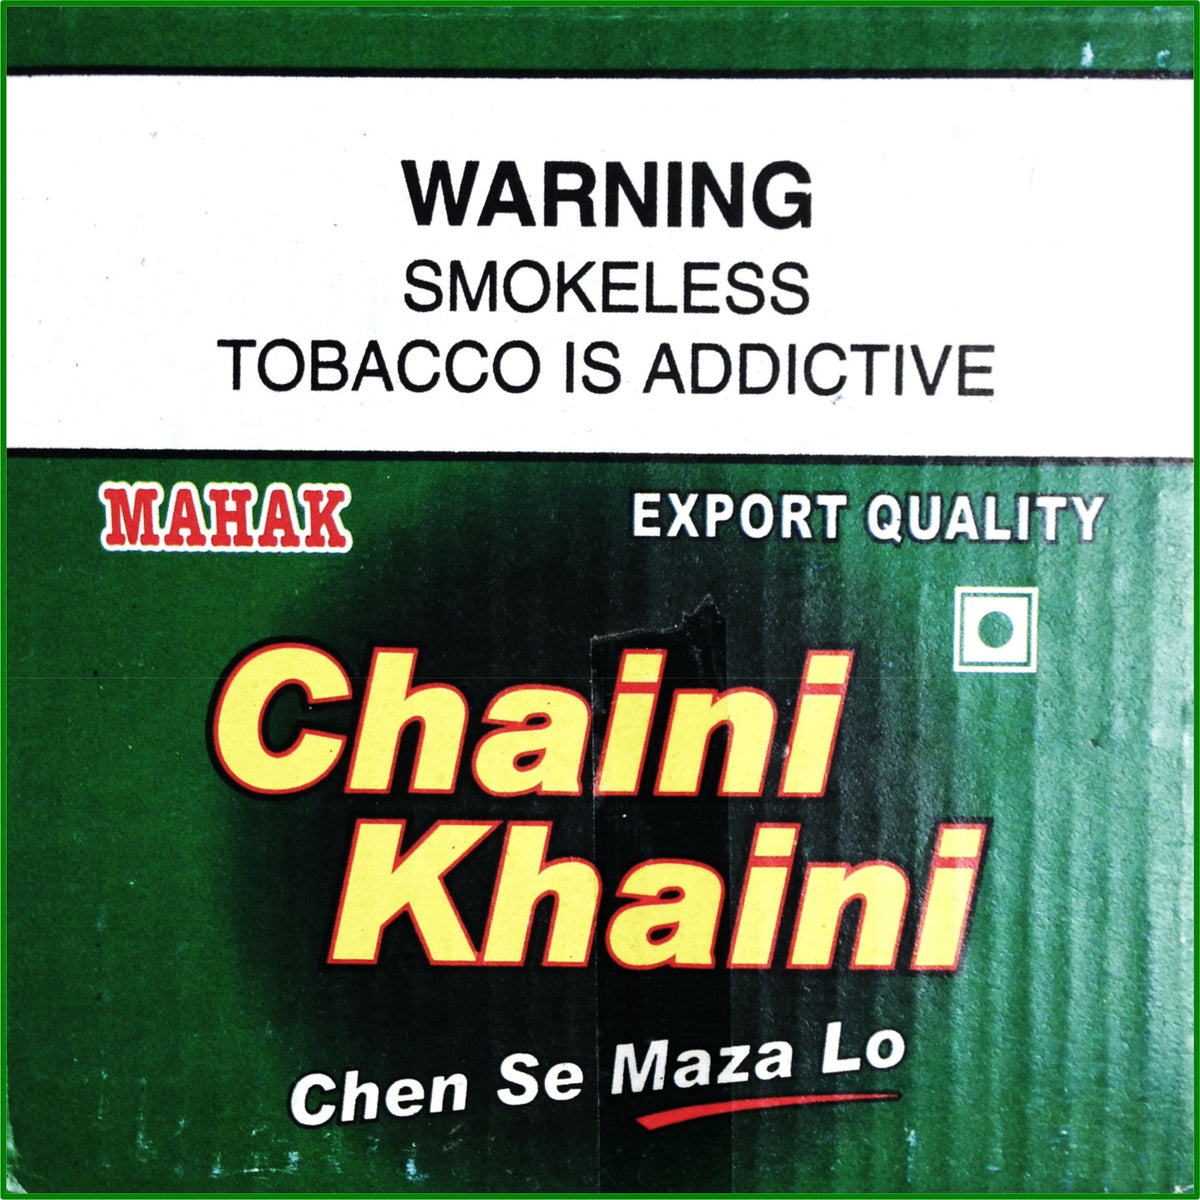 One Box Chaini Khaini Best Indian Tobacco 20 x 4.5g Each